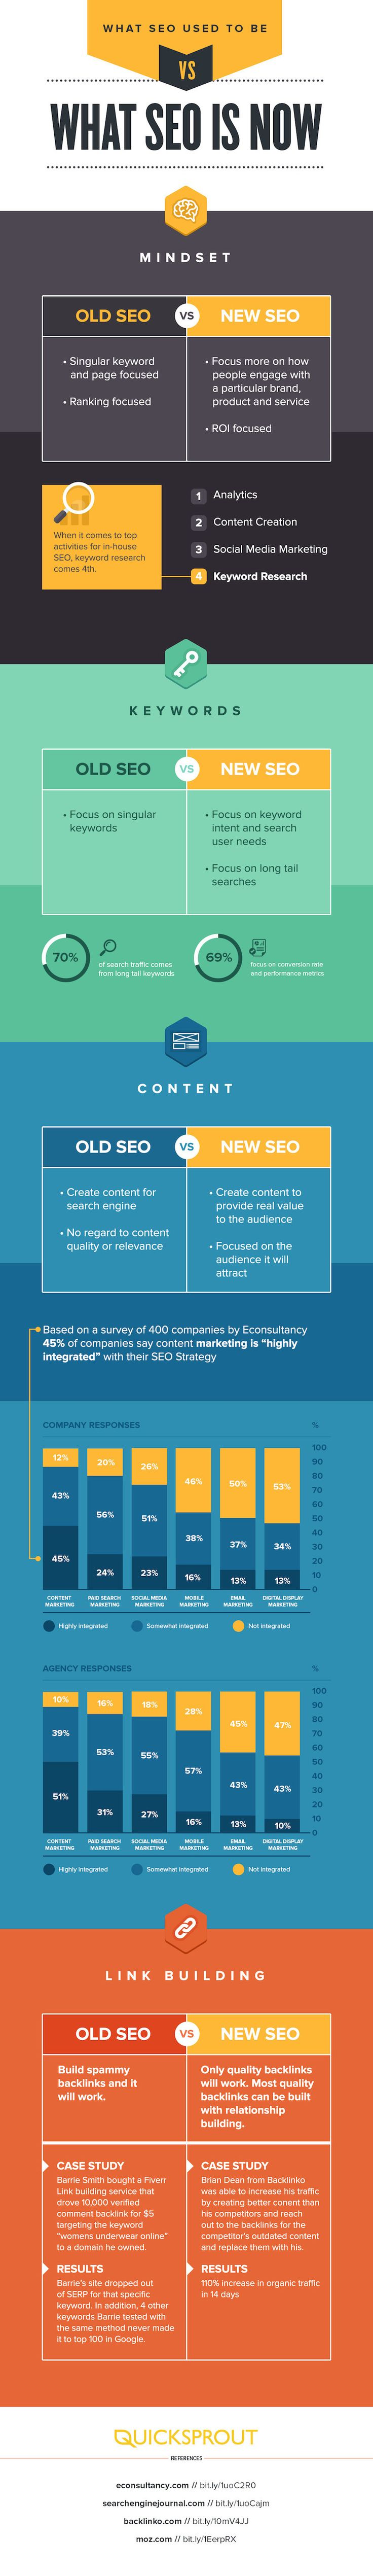 SEO Versus New SEO: What You Need to Know 80d1e0720bb744d40a657f18db97eafa